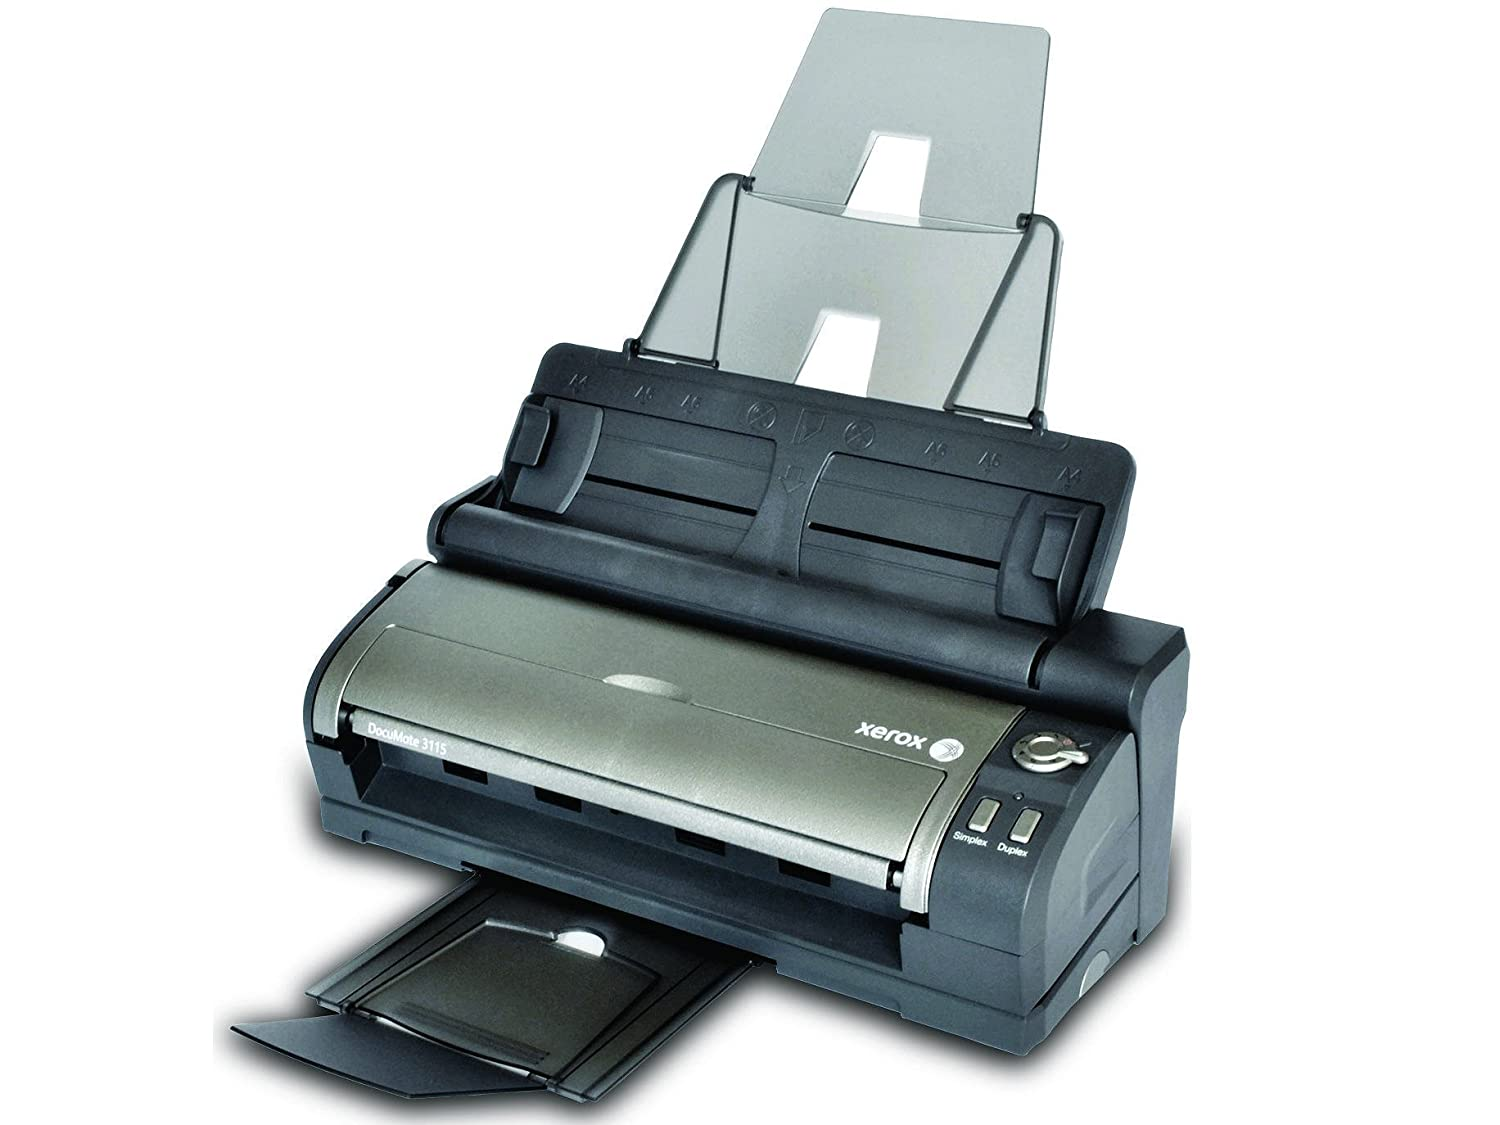 photo feeder pdf multiple dp sc scanner scanners scansnap macintosh larger fujitsu sheet for with fed photos com instant amazon view